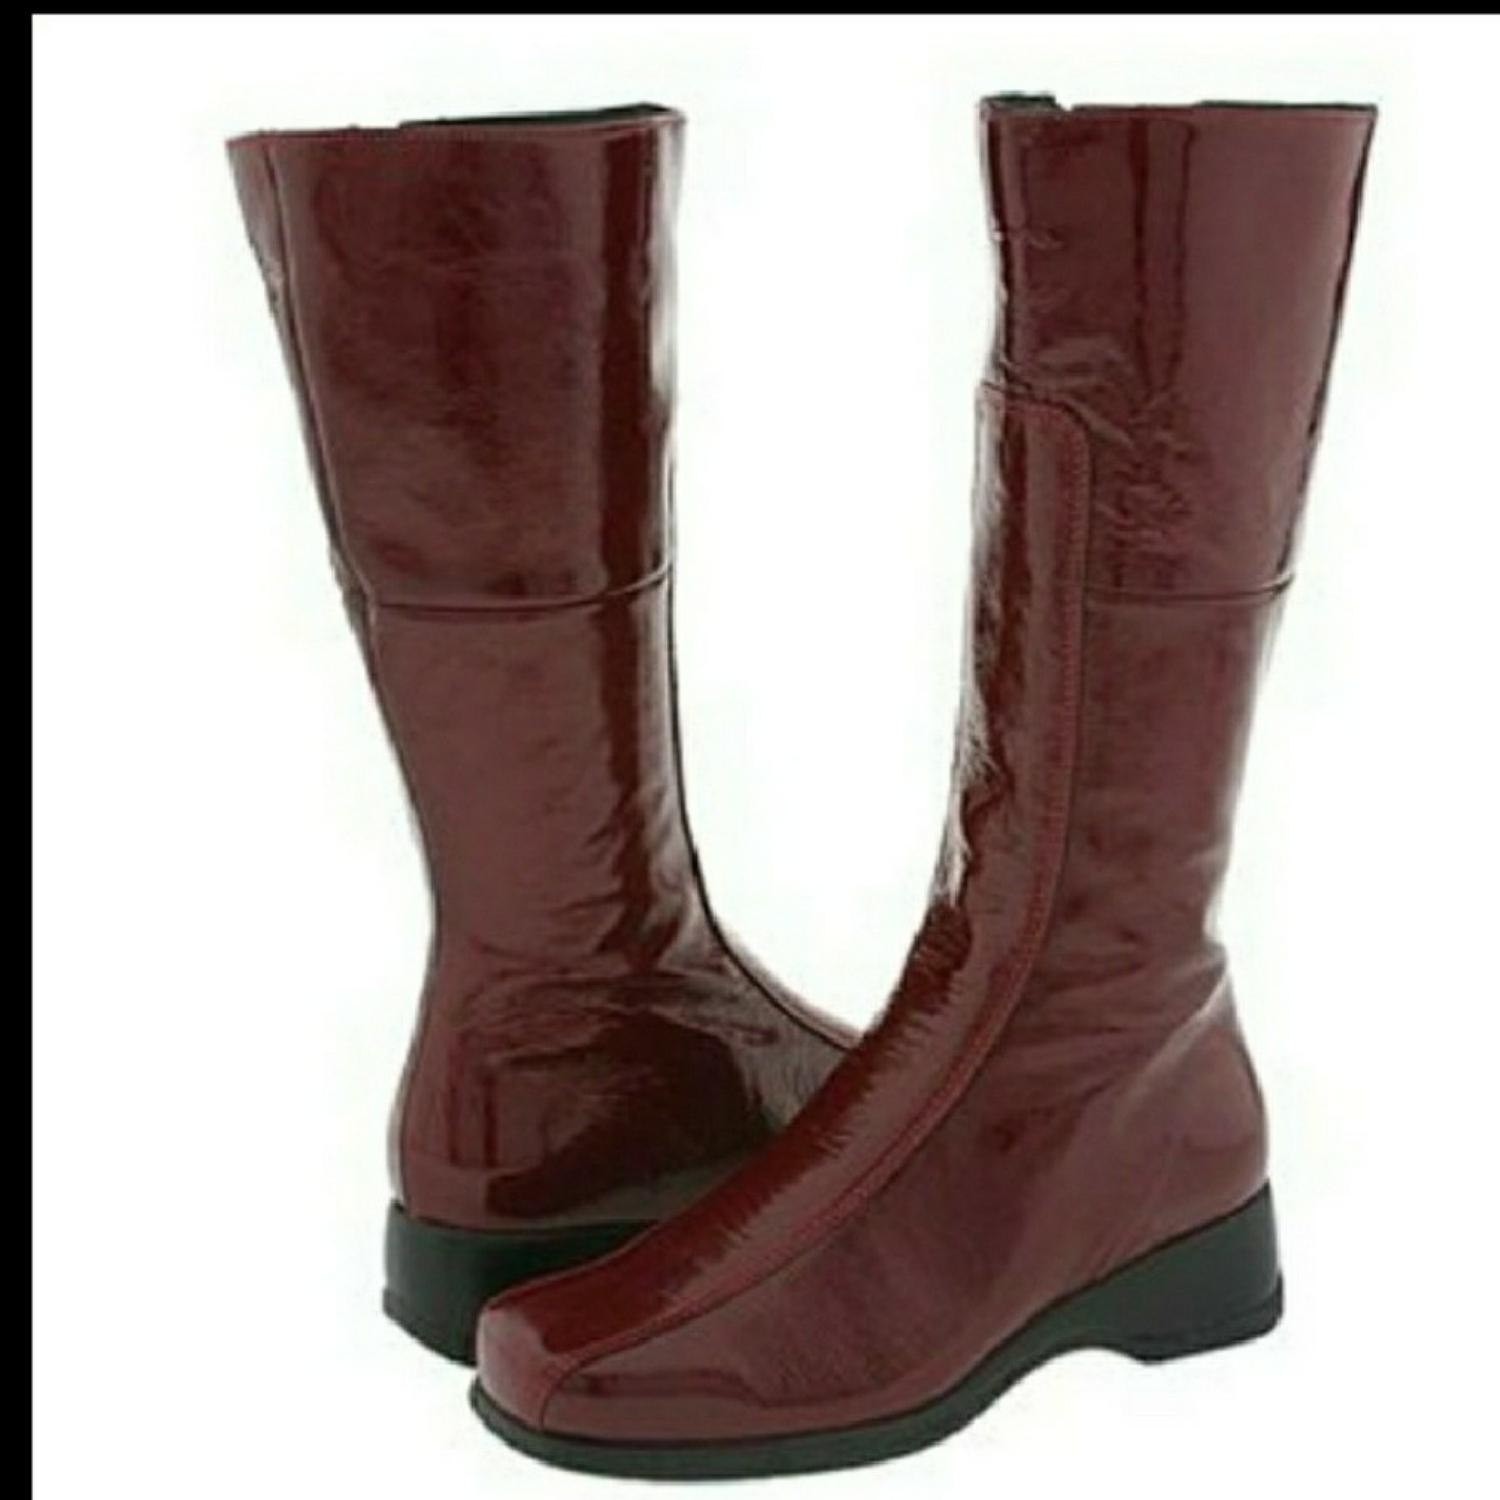 La Canadienne Cherry Blanche Boots